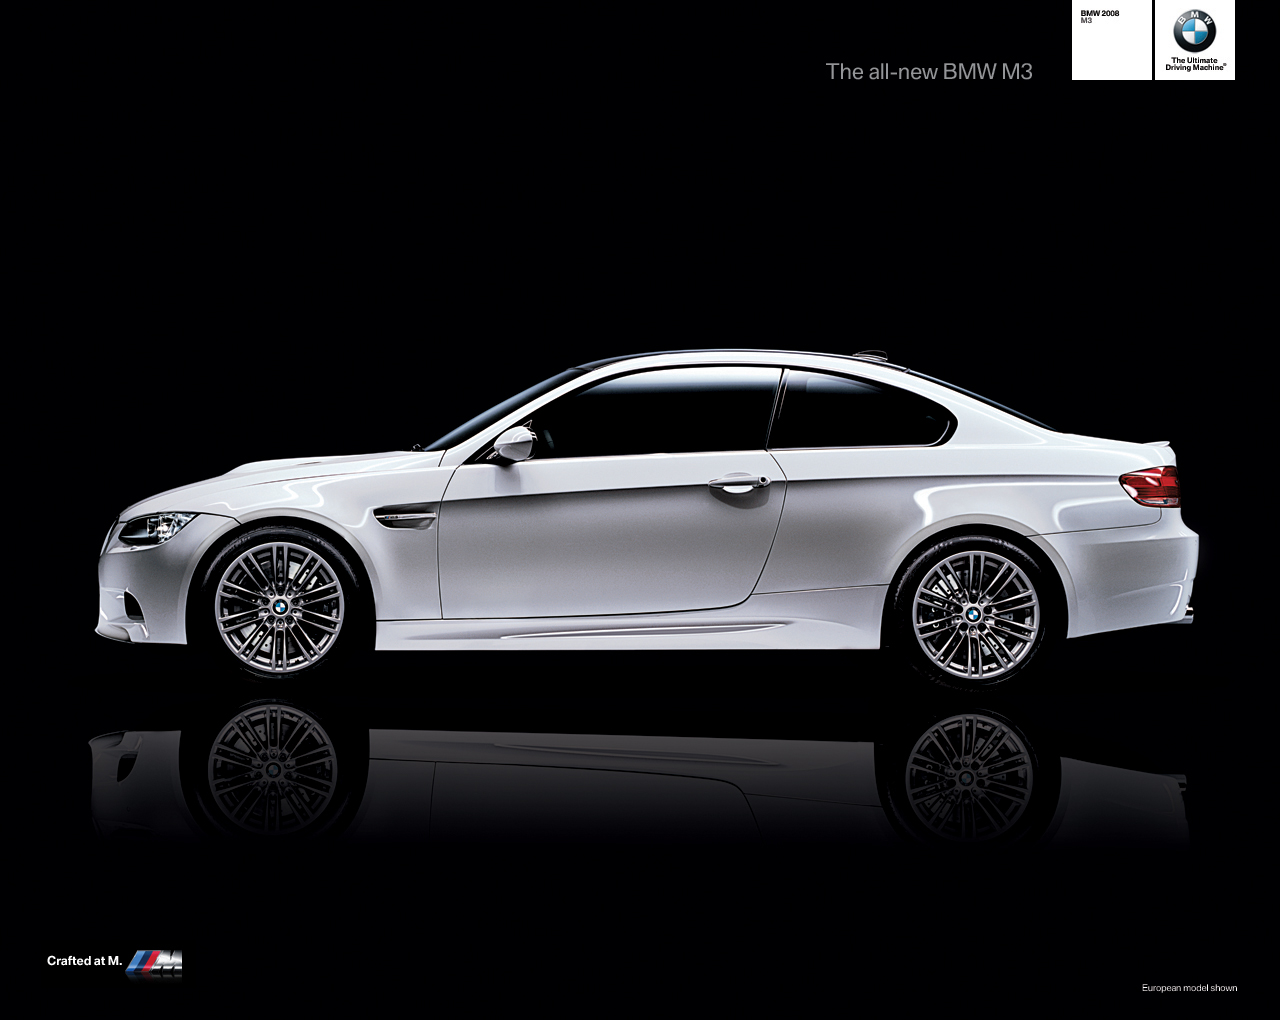 Http://2.bp.blogspot.com/ W_aORe2pMxA/TfO4ID. Bmw M3 E92 Wallpaper  Widescreen